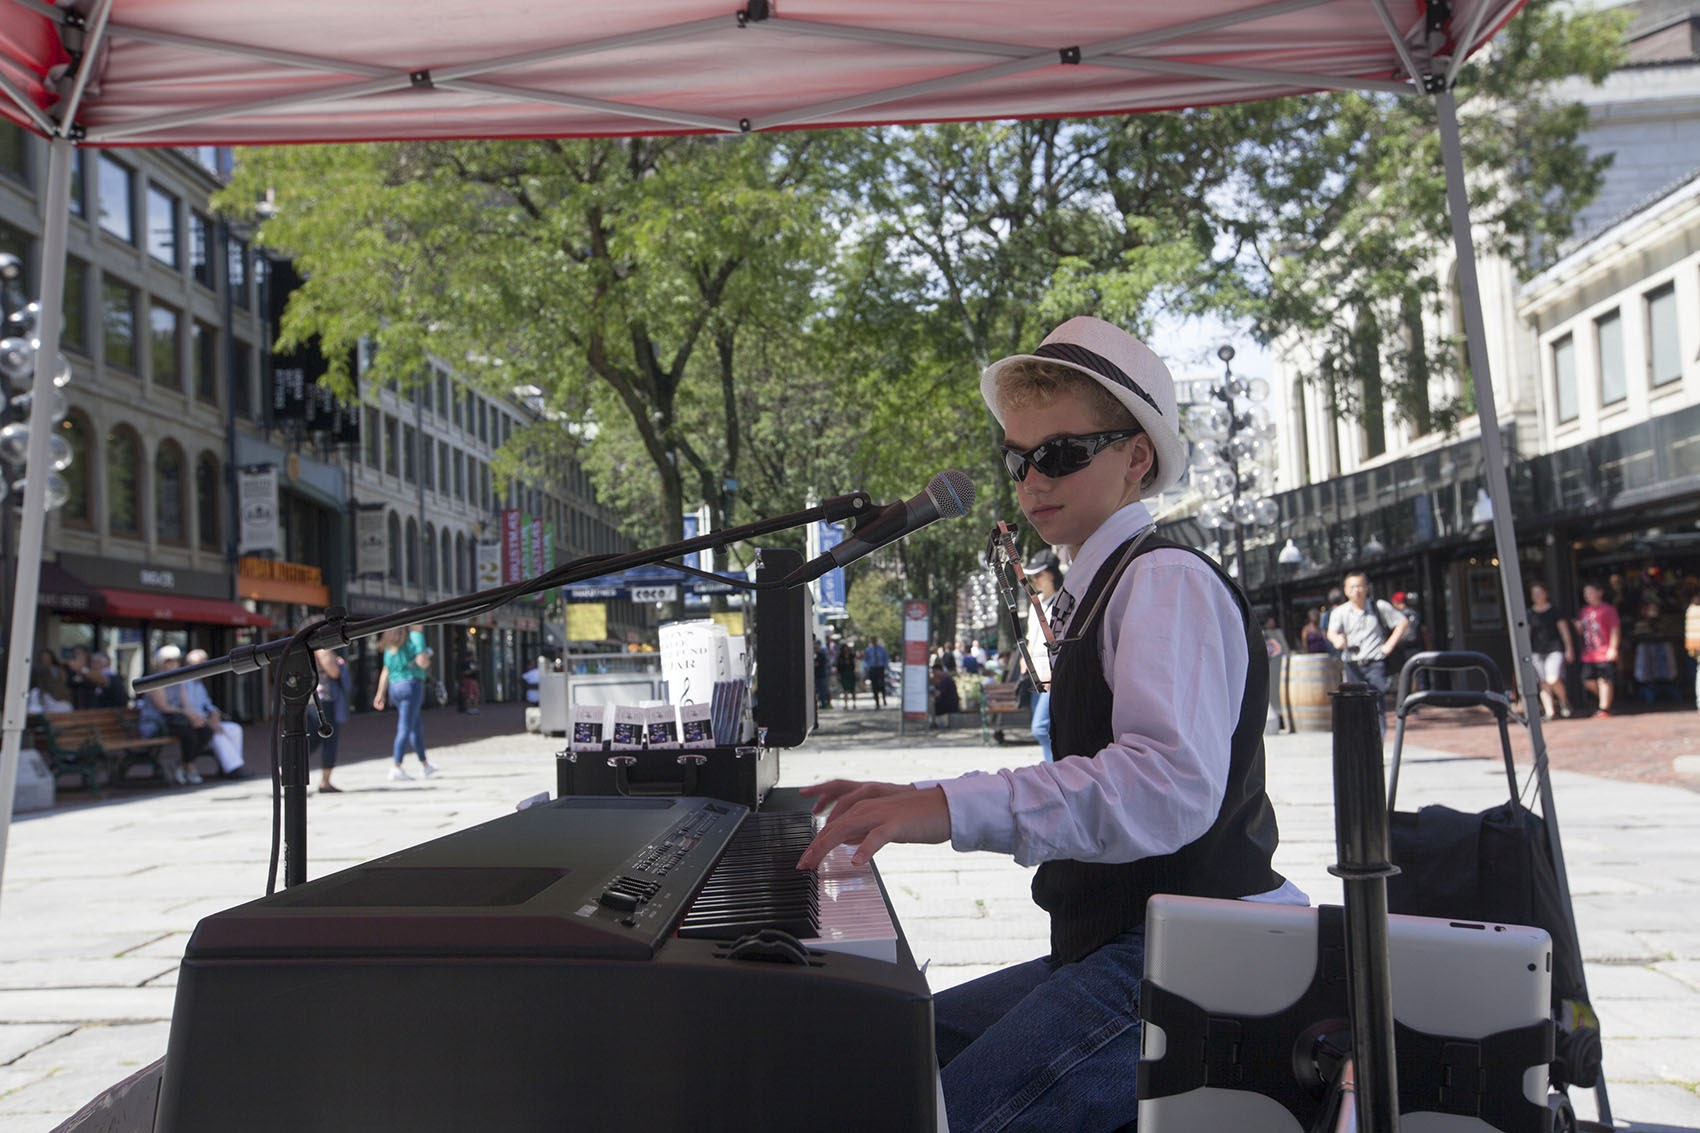 Bradley Bartlett-Roche, known as the Boston Piano Kid, plays in Faneuil Hall this summer. (Joe Difazio for WBUR)